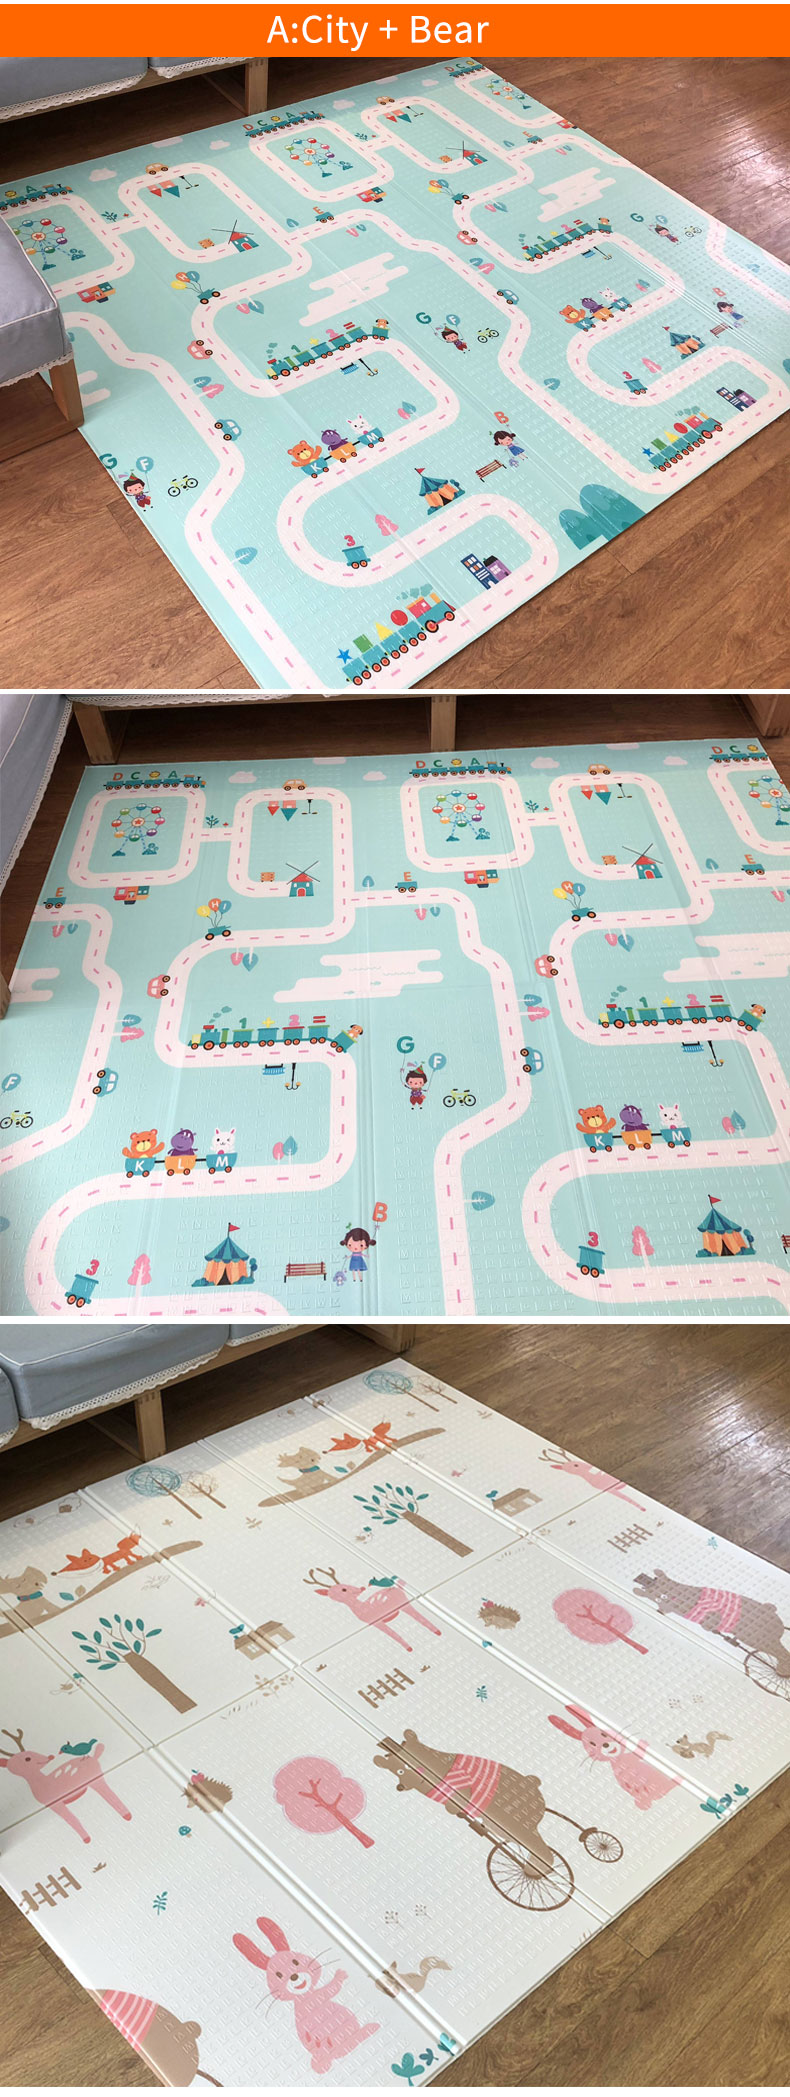 H61a518dad7fc42faa6d240a76bd16c38m 180X200CM Baby Mat 1CM Thickness Cartoon XPE Kid Play Mat Foldable Anti-skid Carpet Children Game Mat